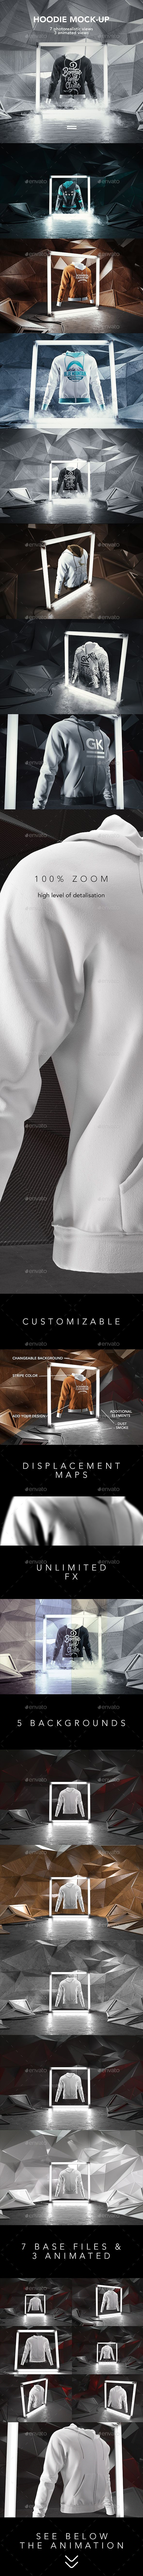 Template hoodie template and shirt design template photoshop - Hoodie Mock Up Animated Mock Up Design Template T Shirts Apparel